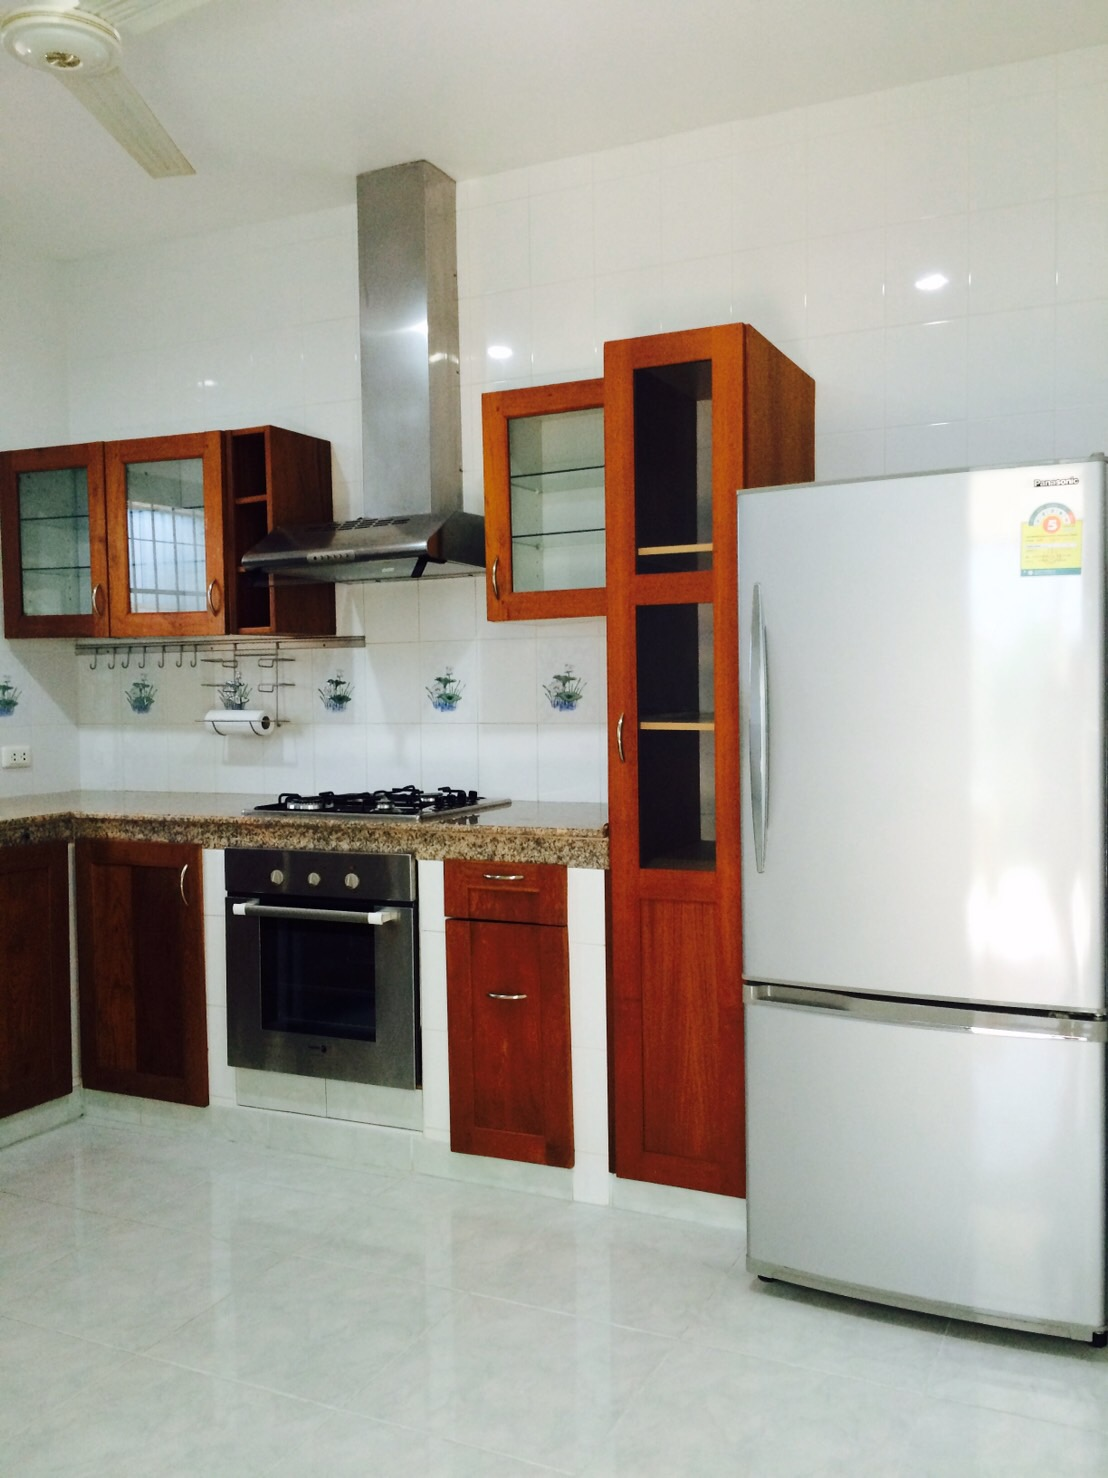 2 Bedroom House for rent 5 minute to Nai Harn